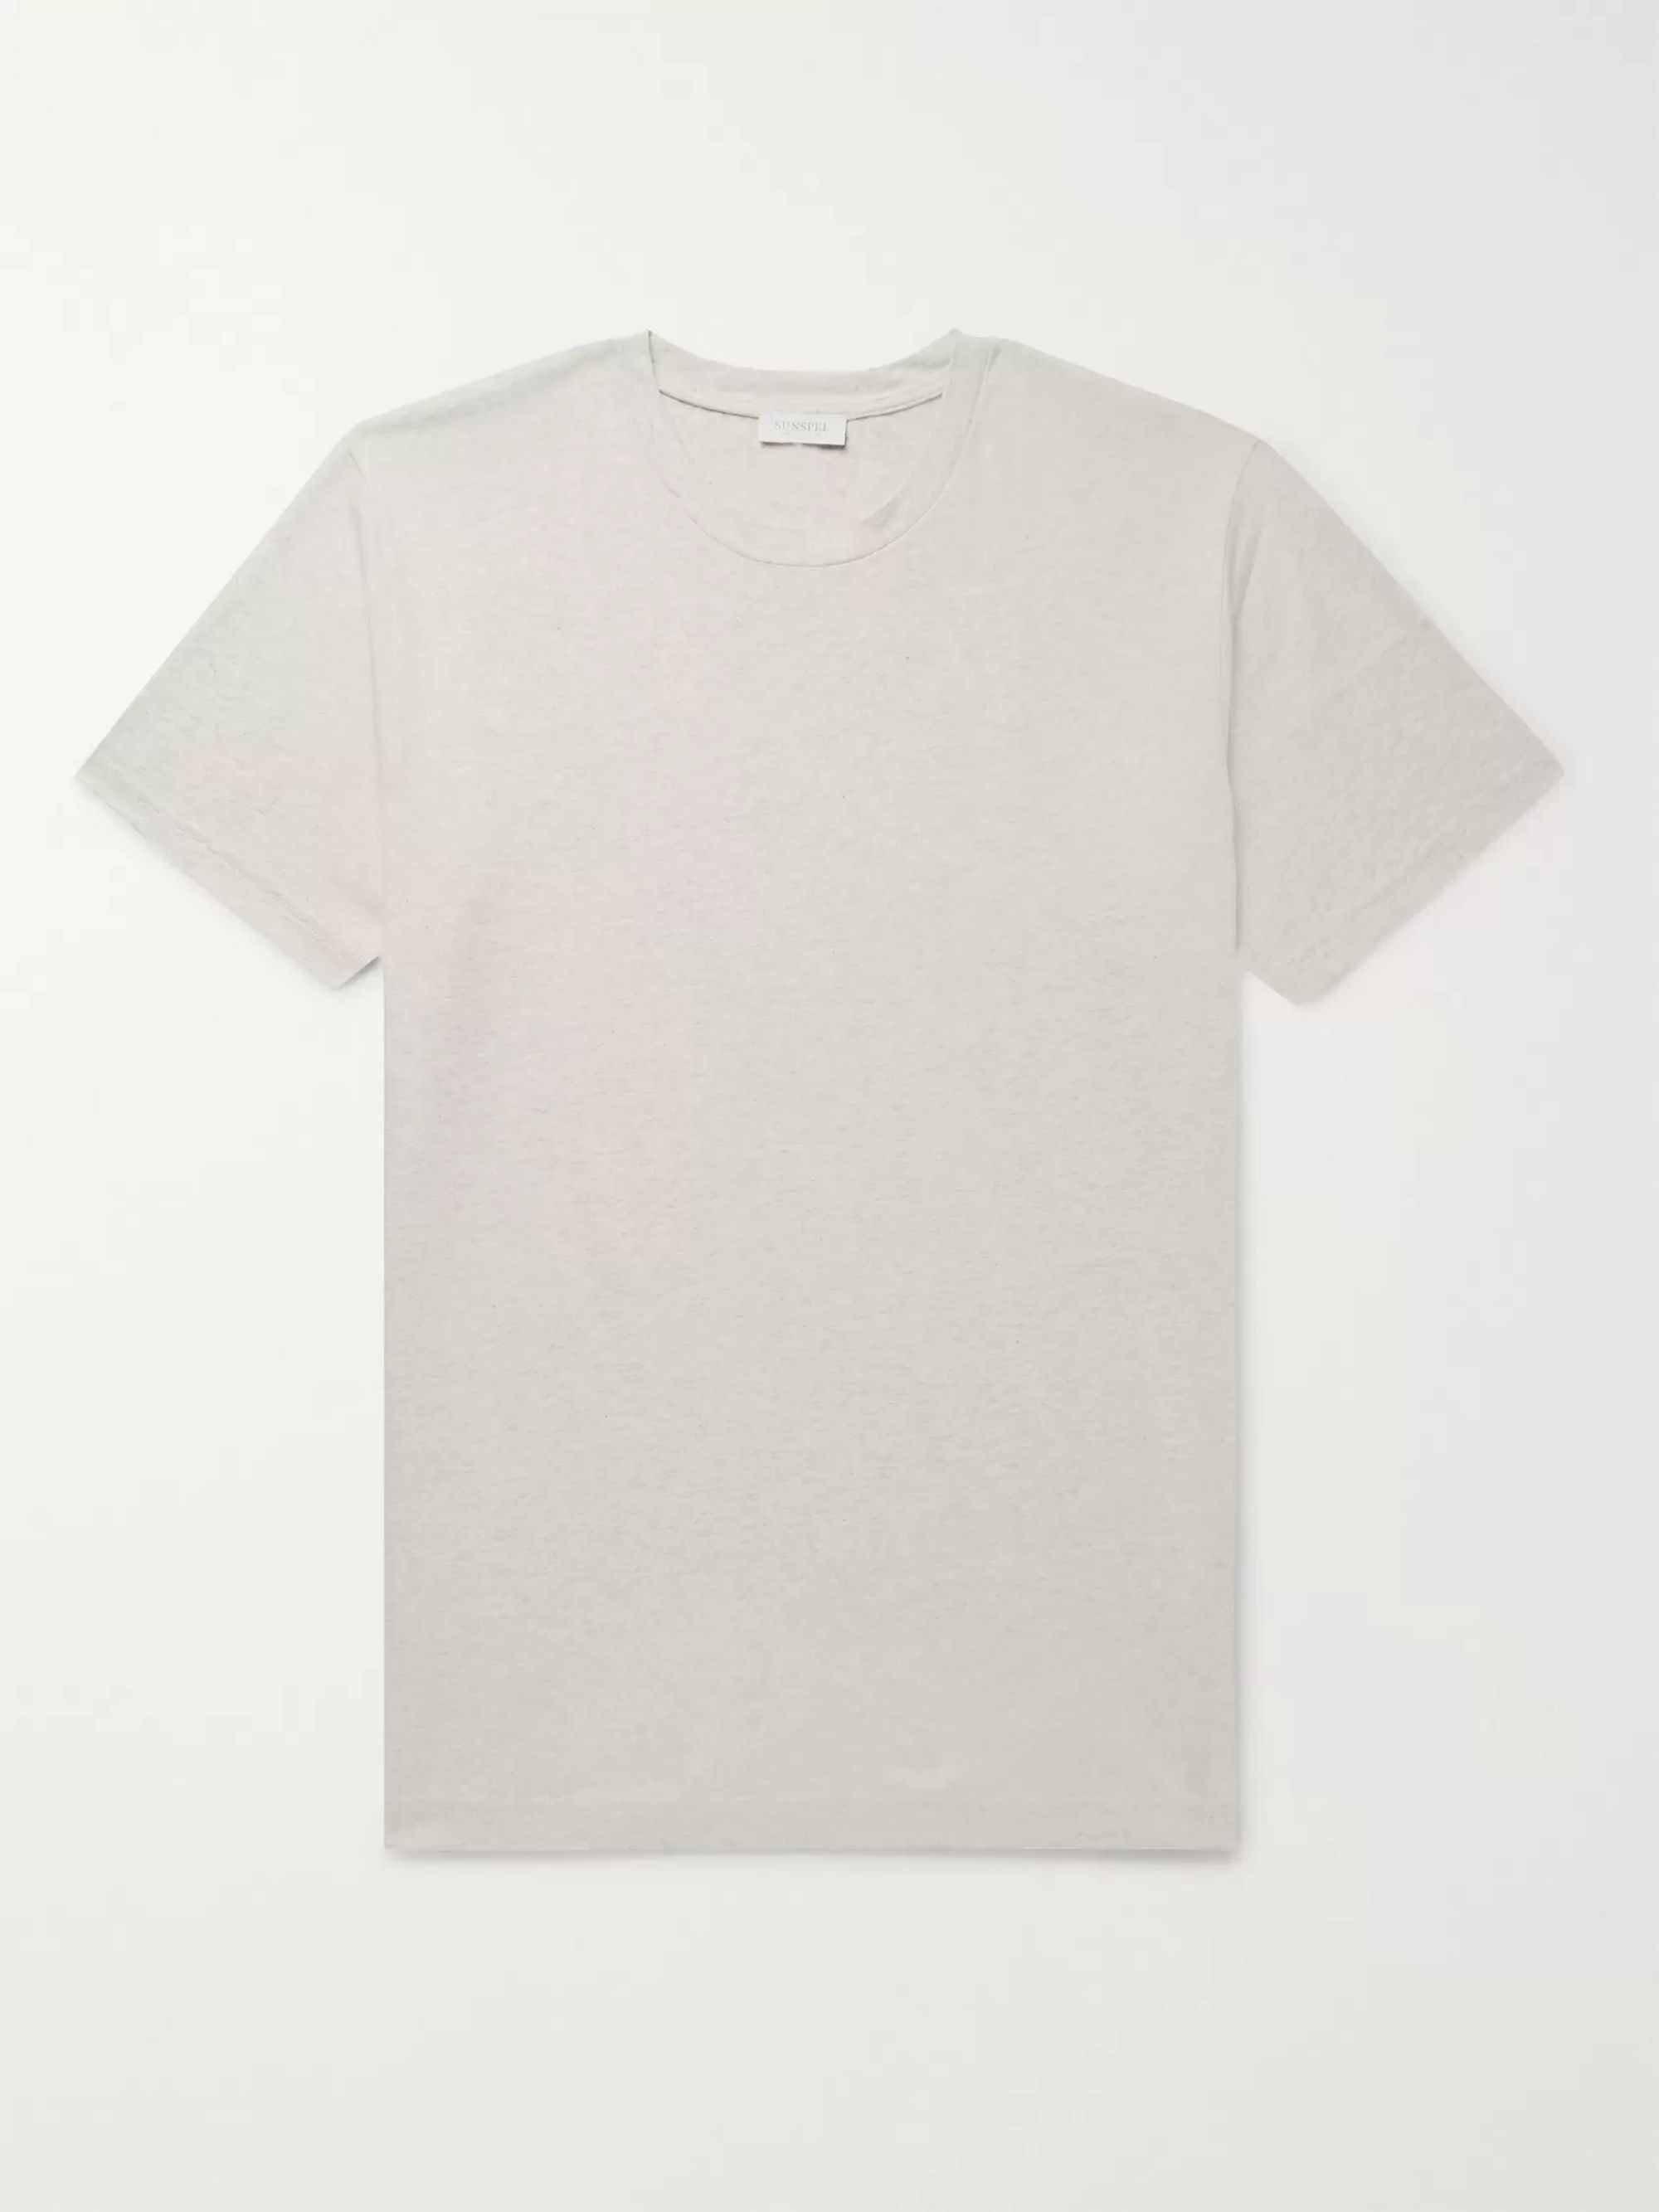 Sunspel Riviera Mélange Cotton-Jersey T-Shirt